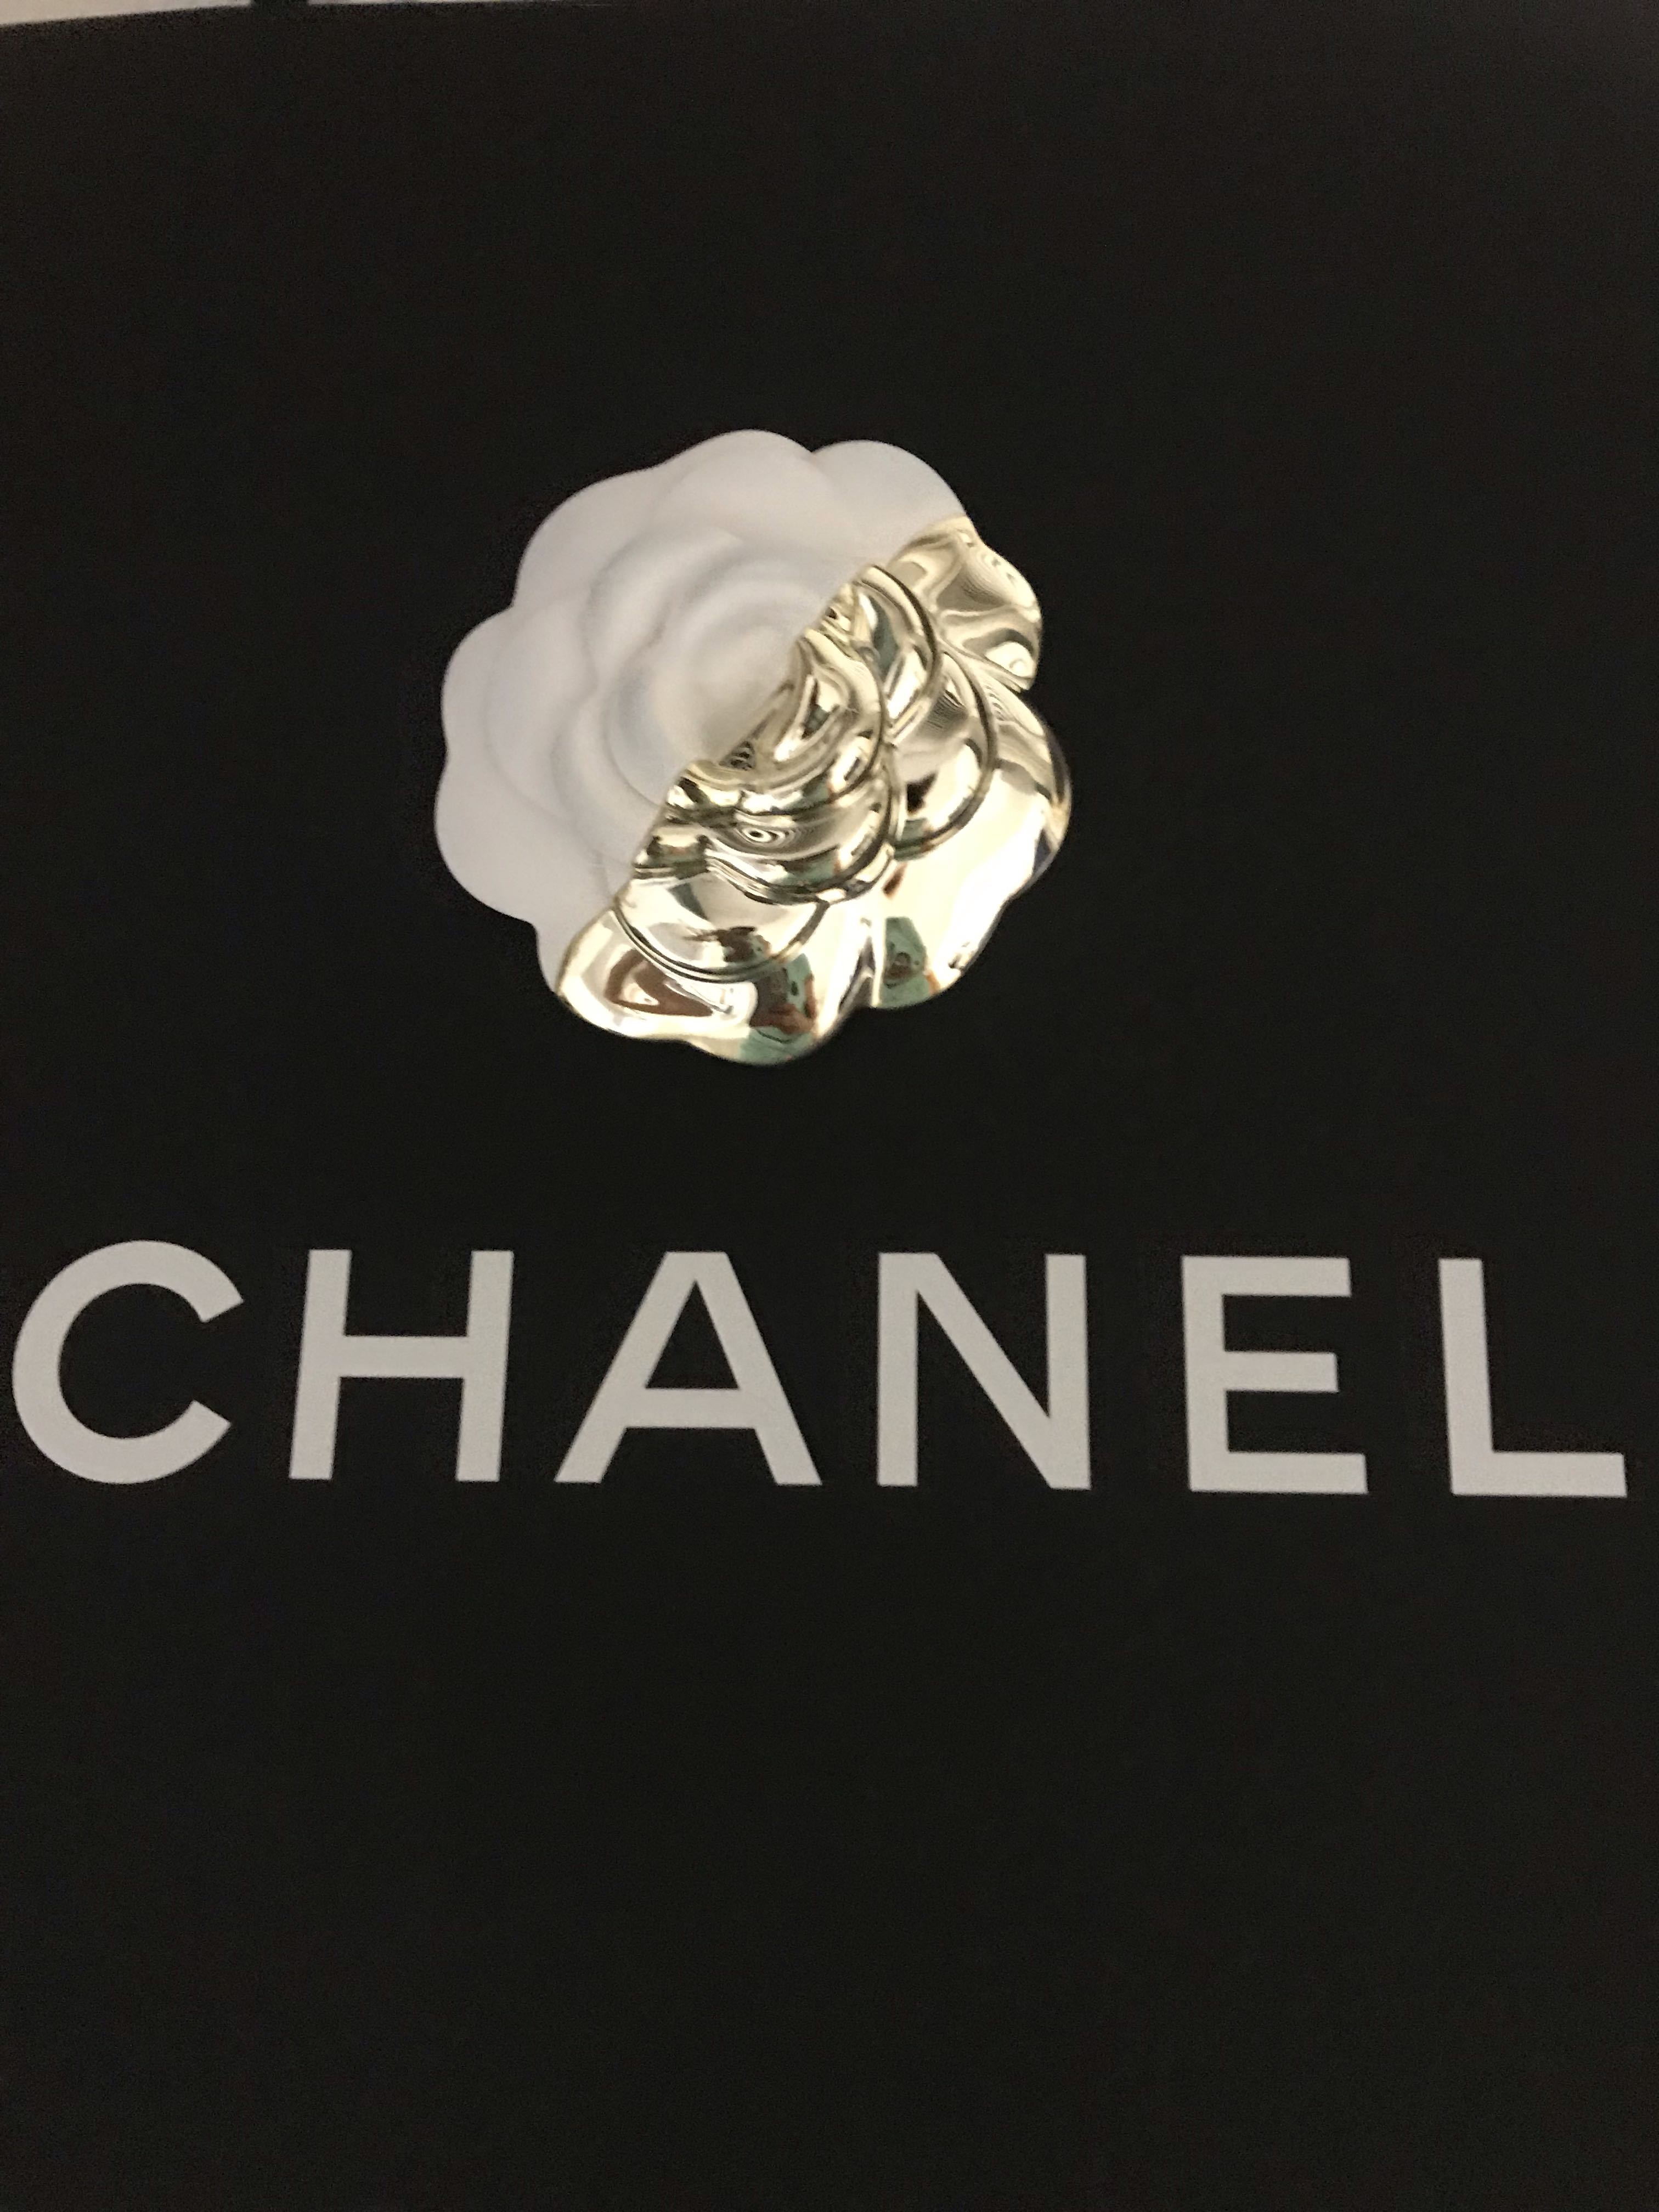 da67c401df34 Chanel paperbag, Luxury, Bags & Wallets, Others on Carousell